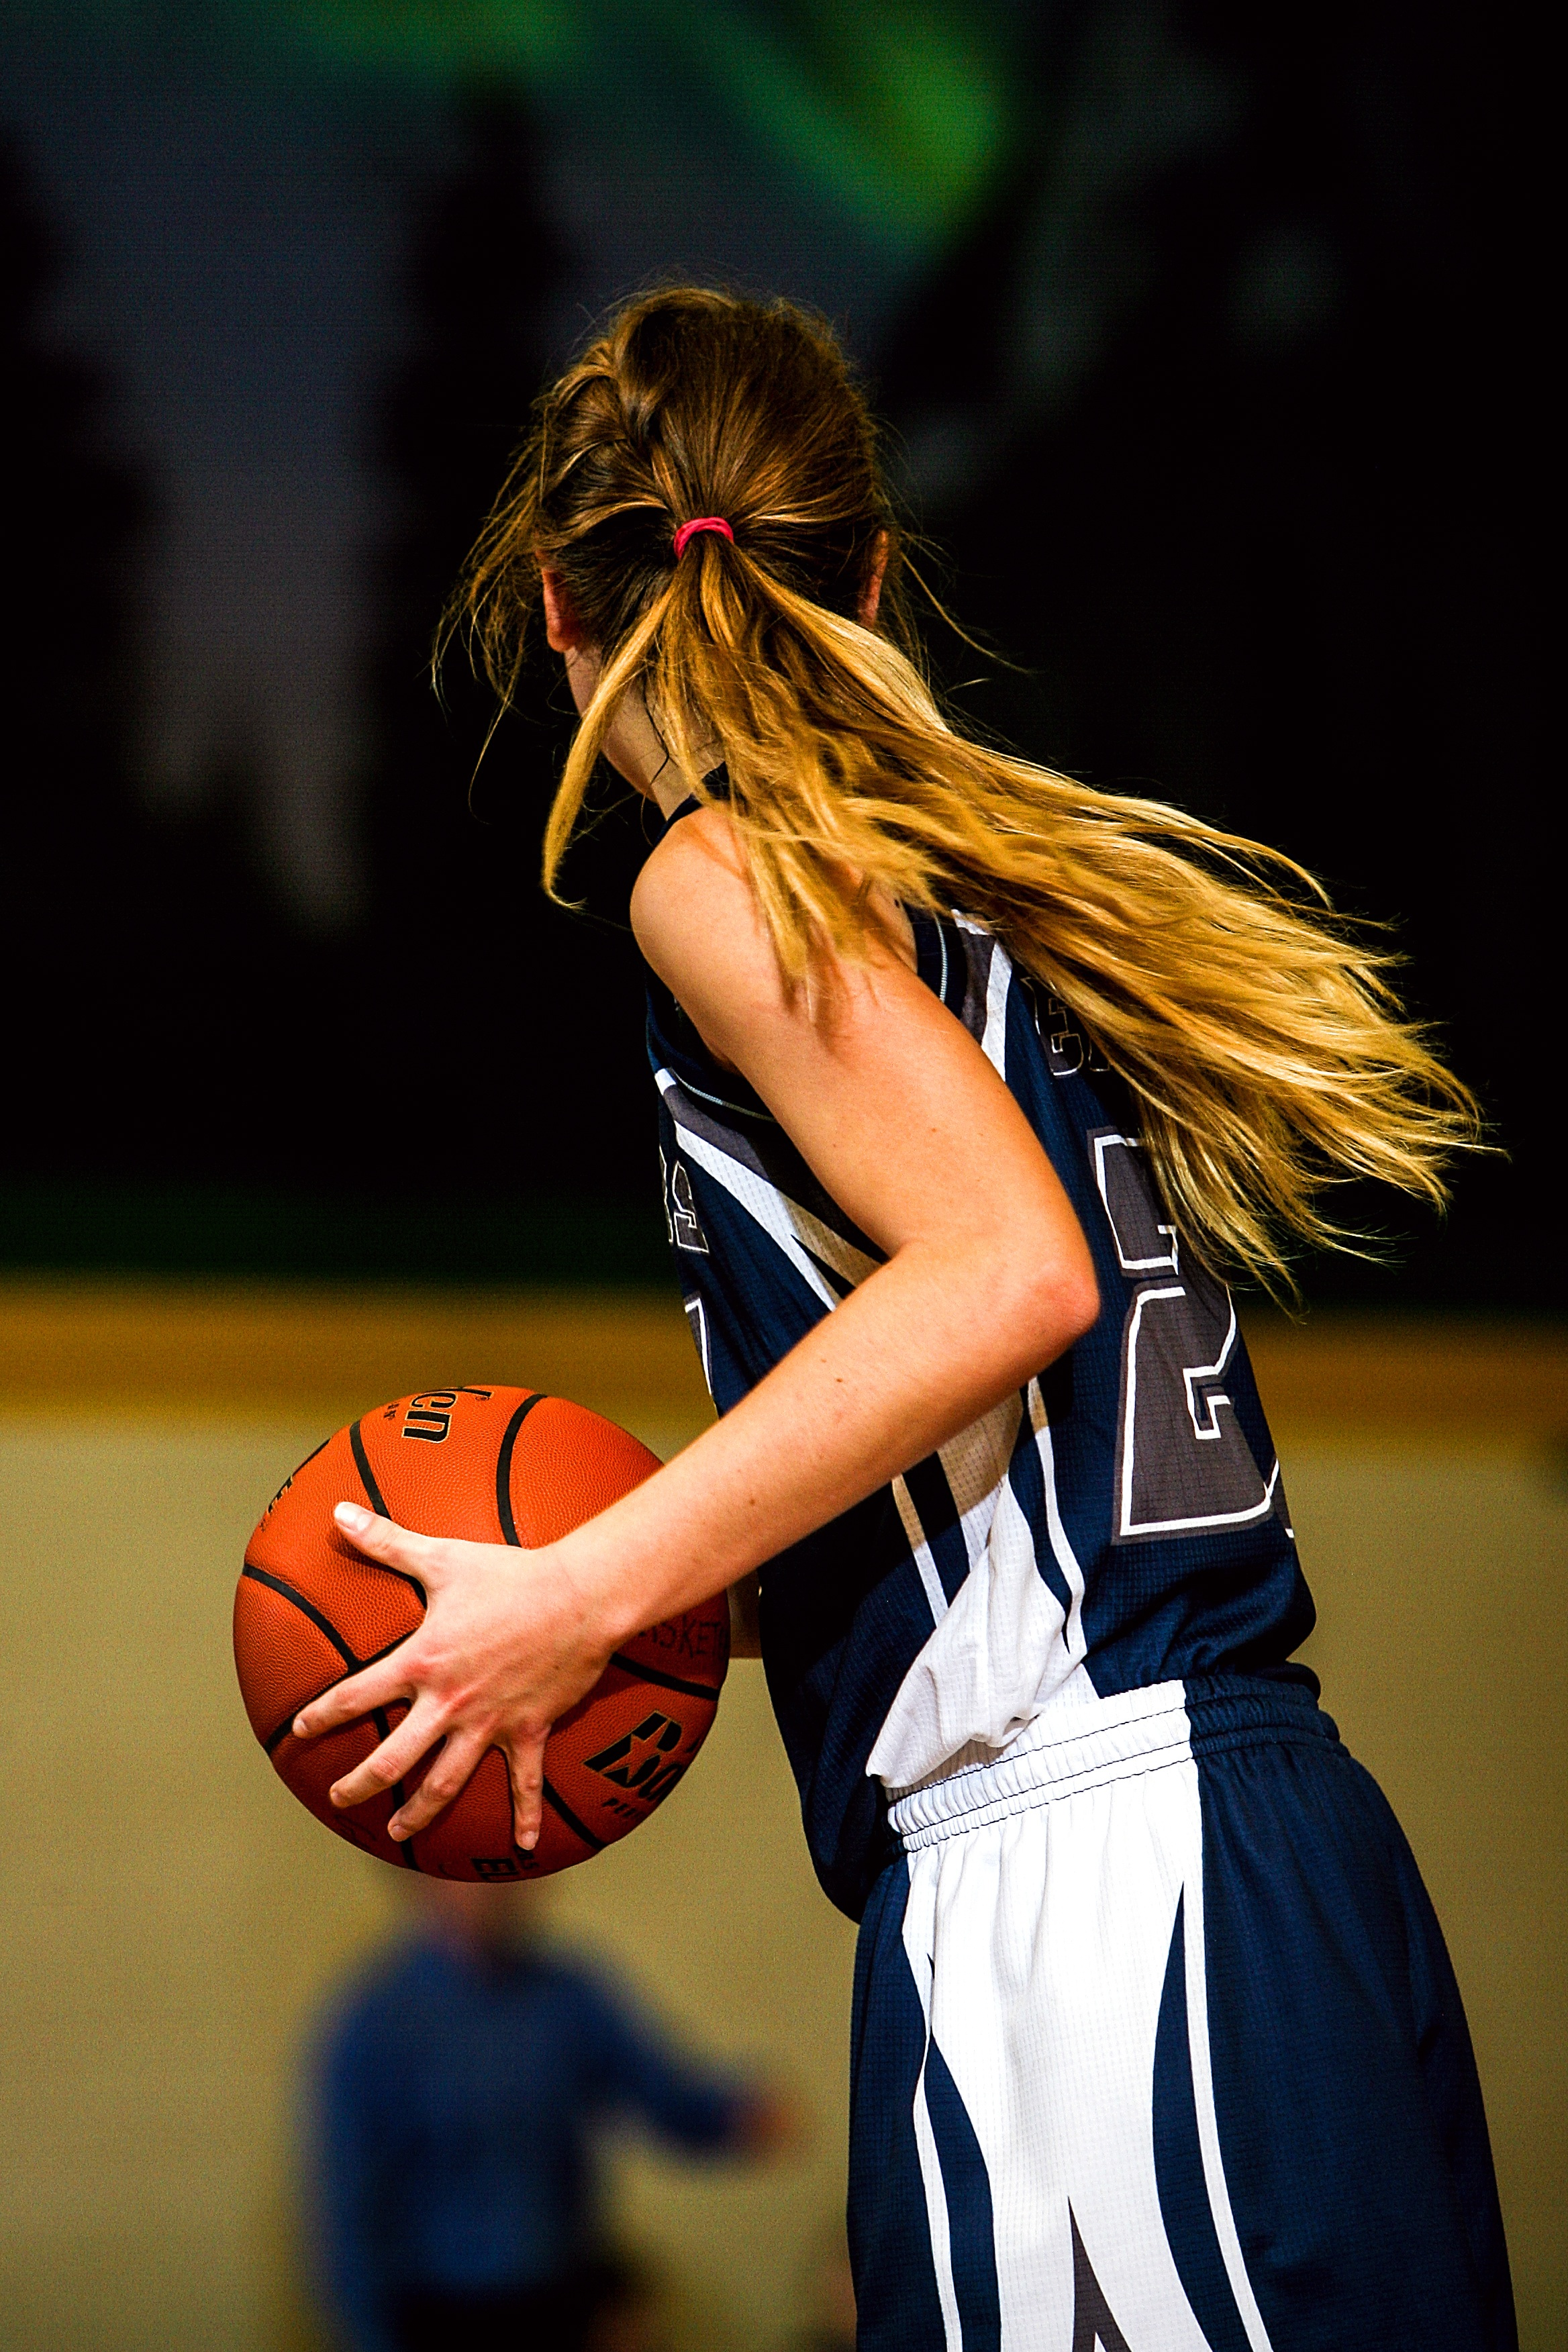 free stock photos of basketball player pexels